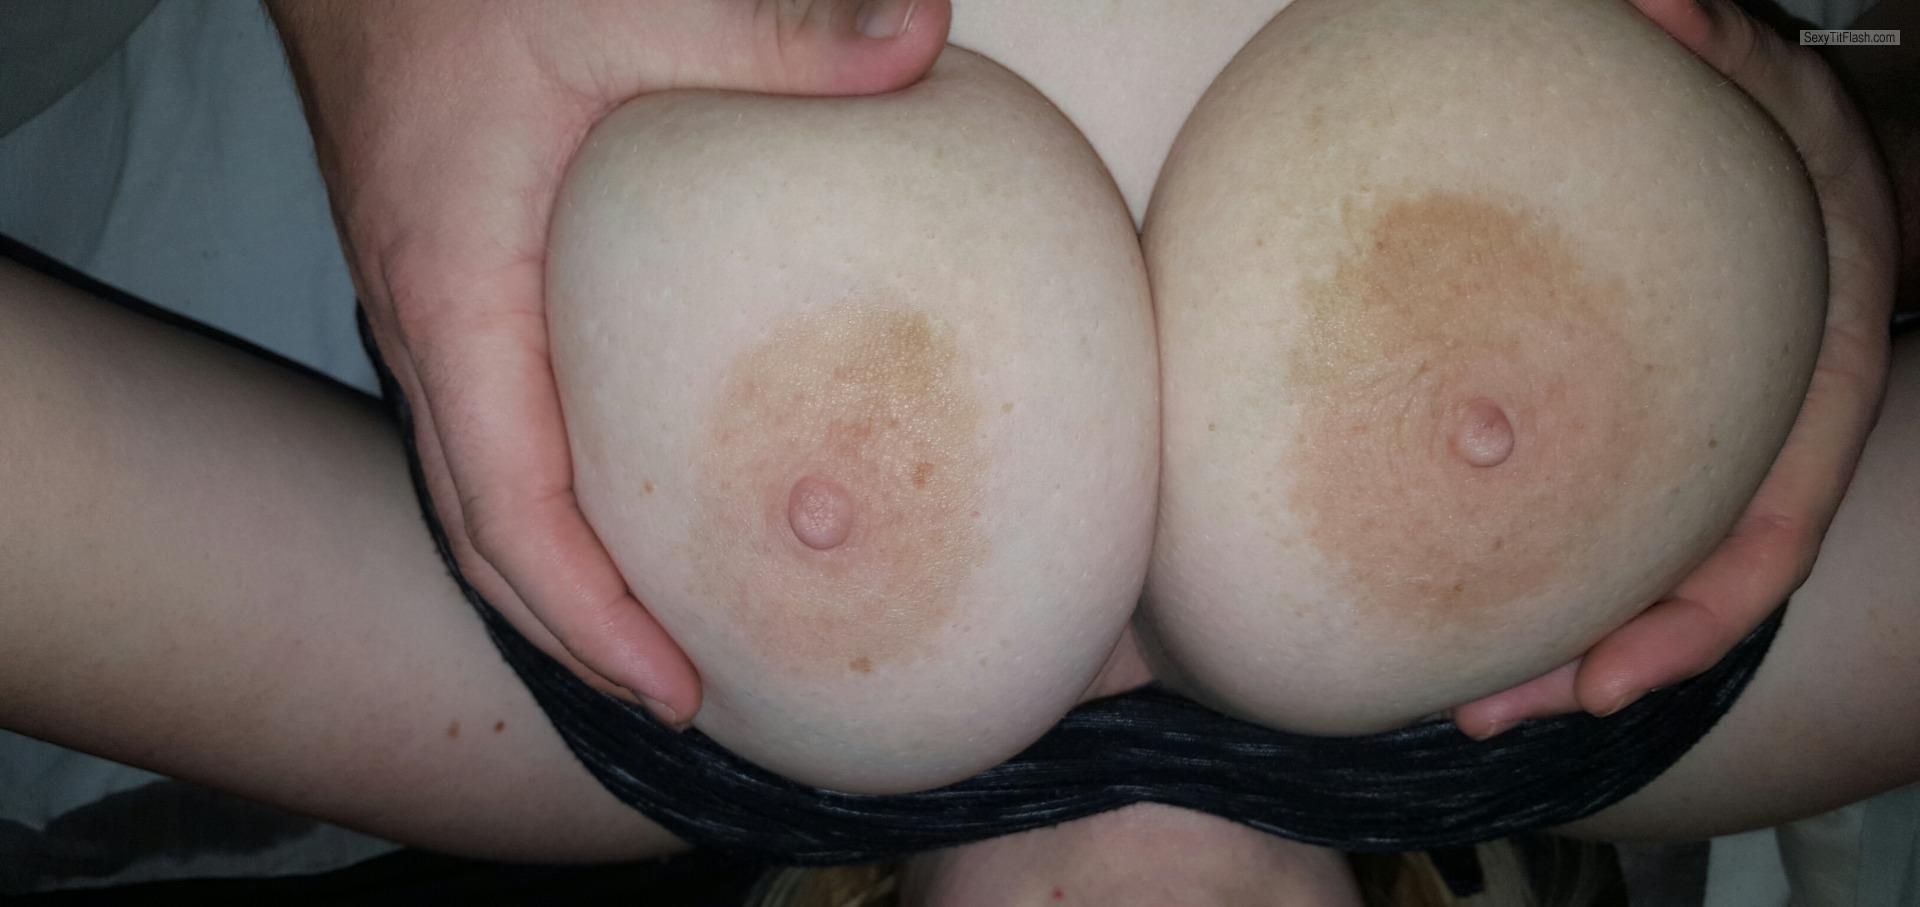 Tit Flash: Wife's Very Big Tits - My Sexy Wife from United Kingdom